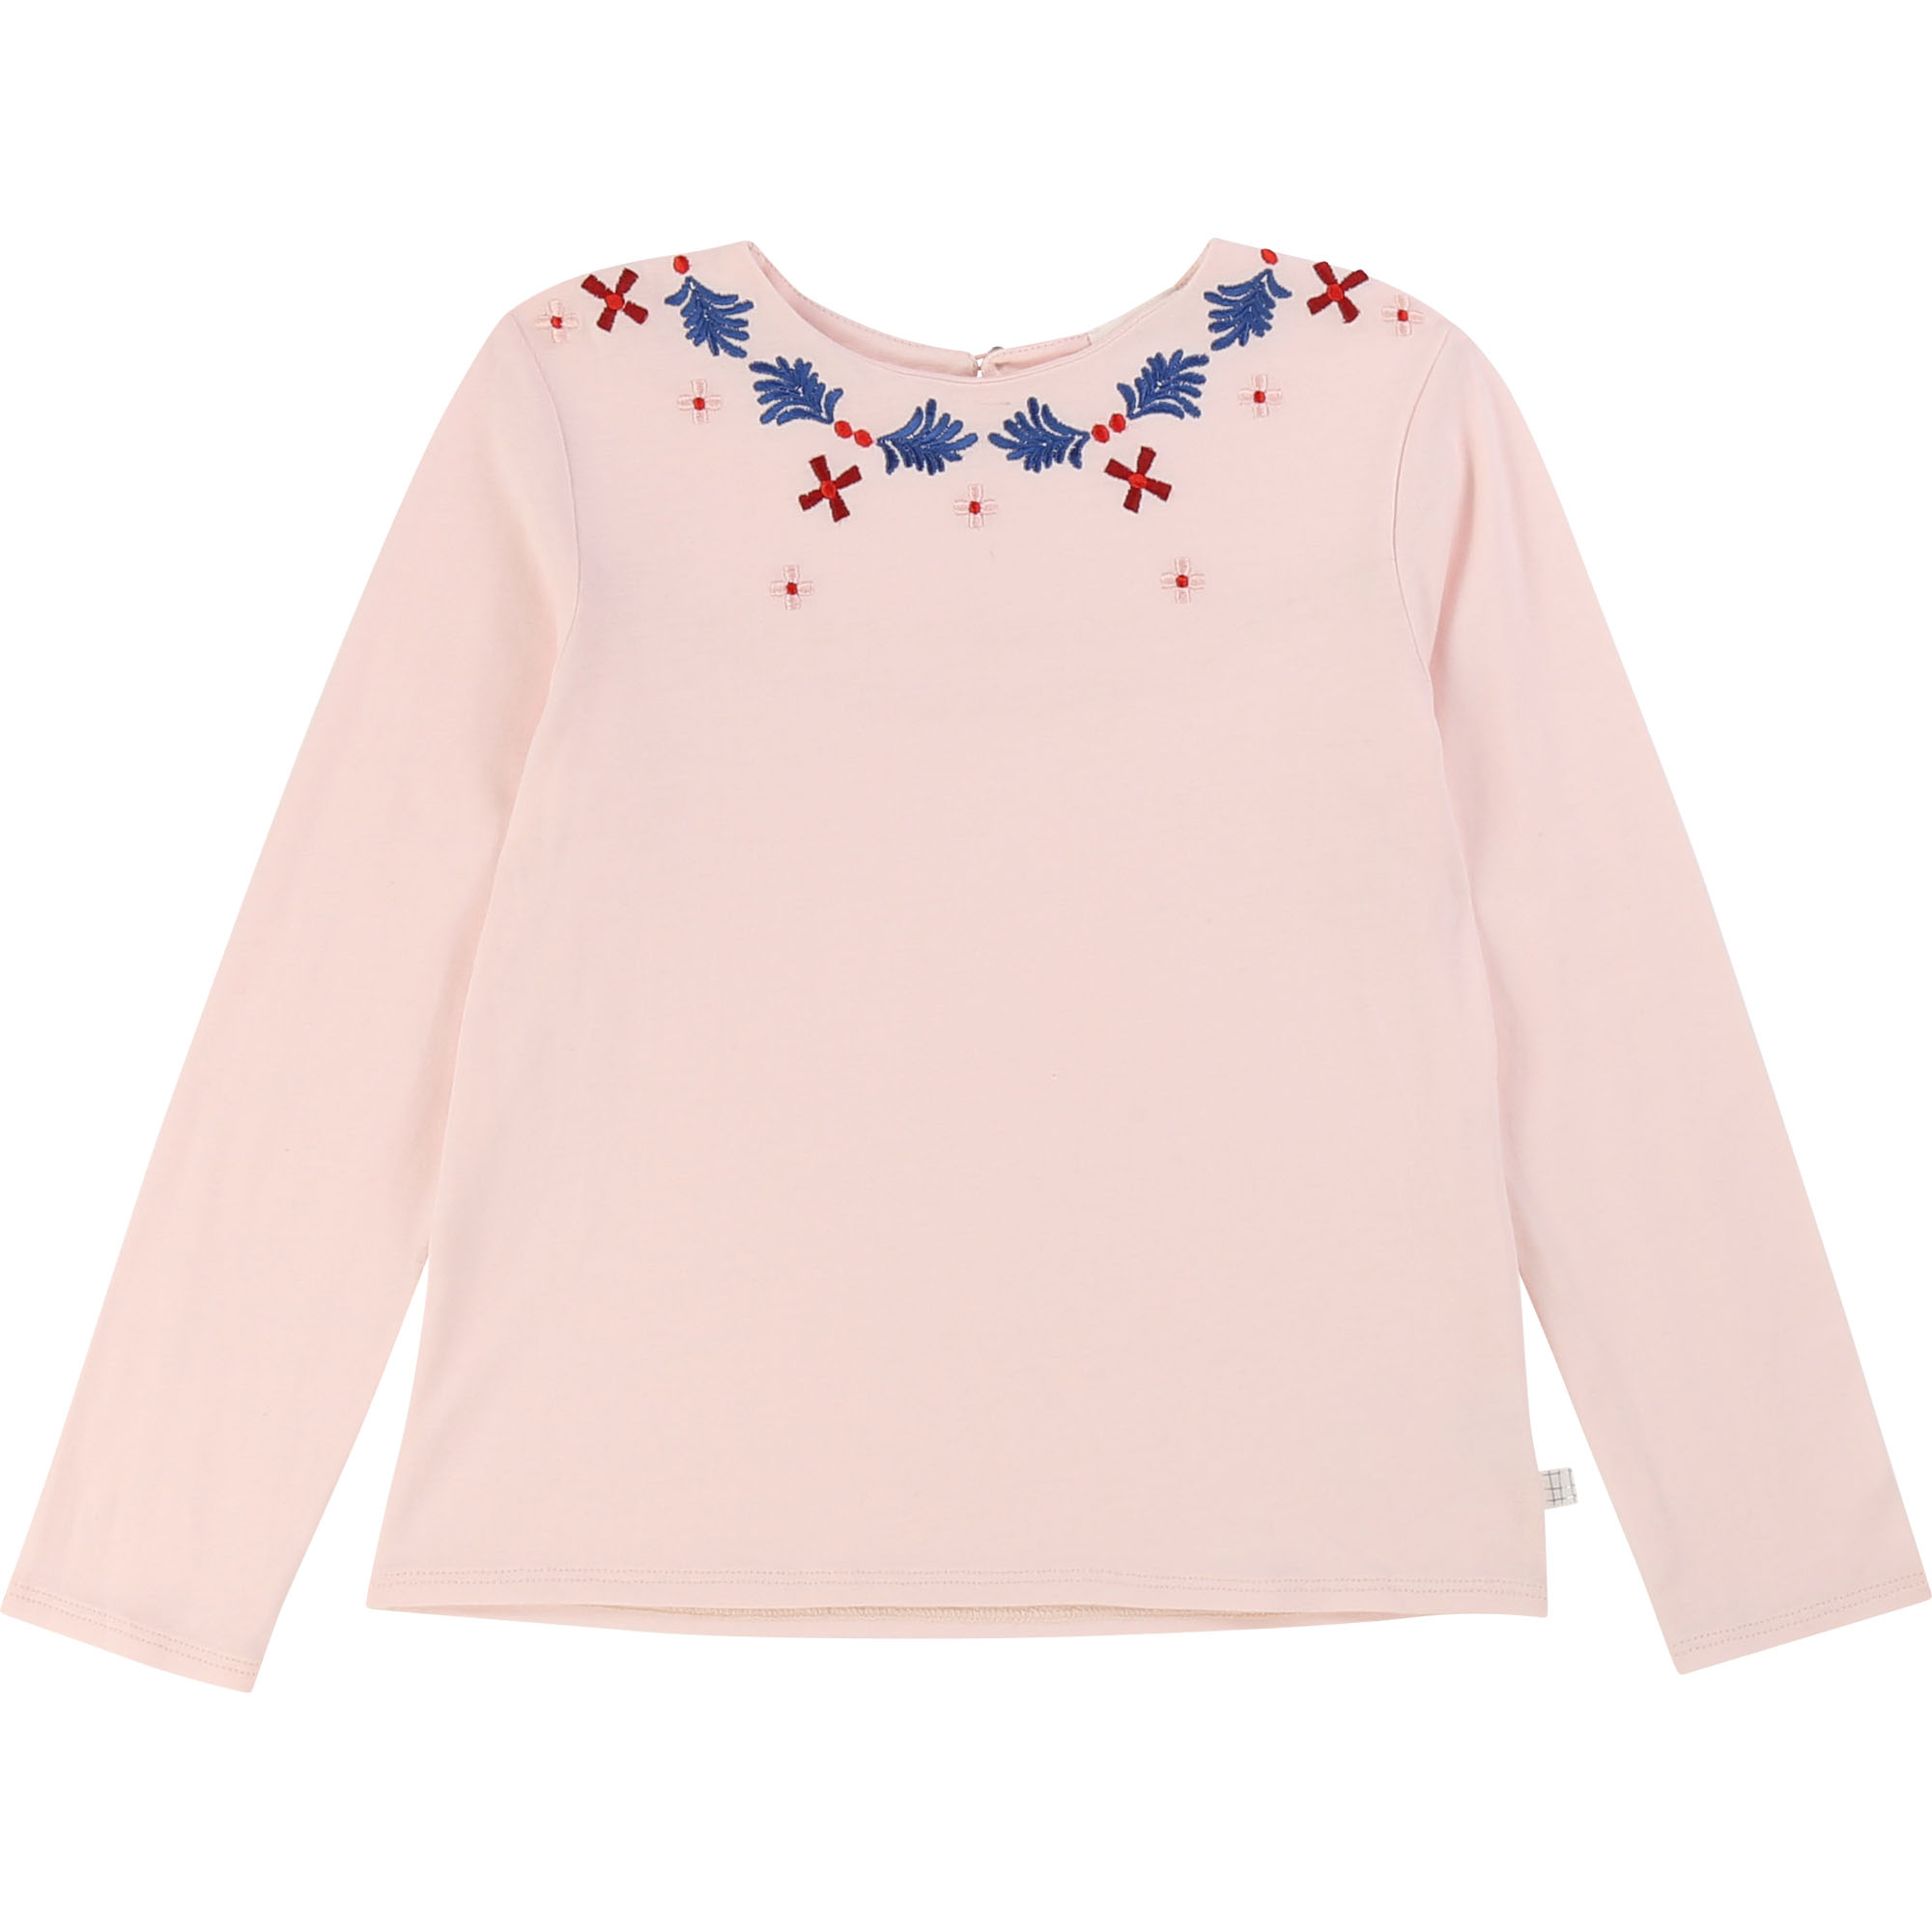 Cotton modal jersey T-shirt CARREMENT BEAU for GIRL